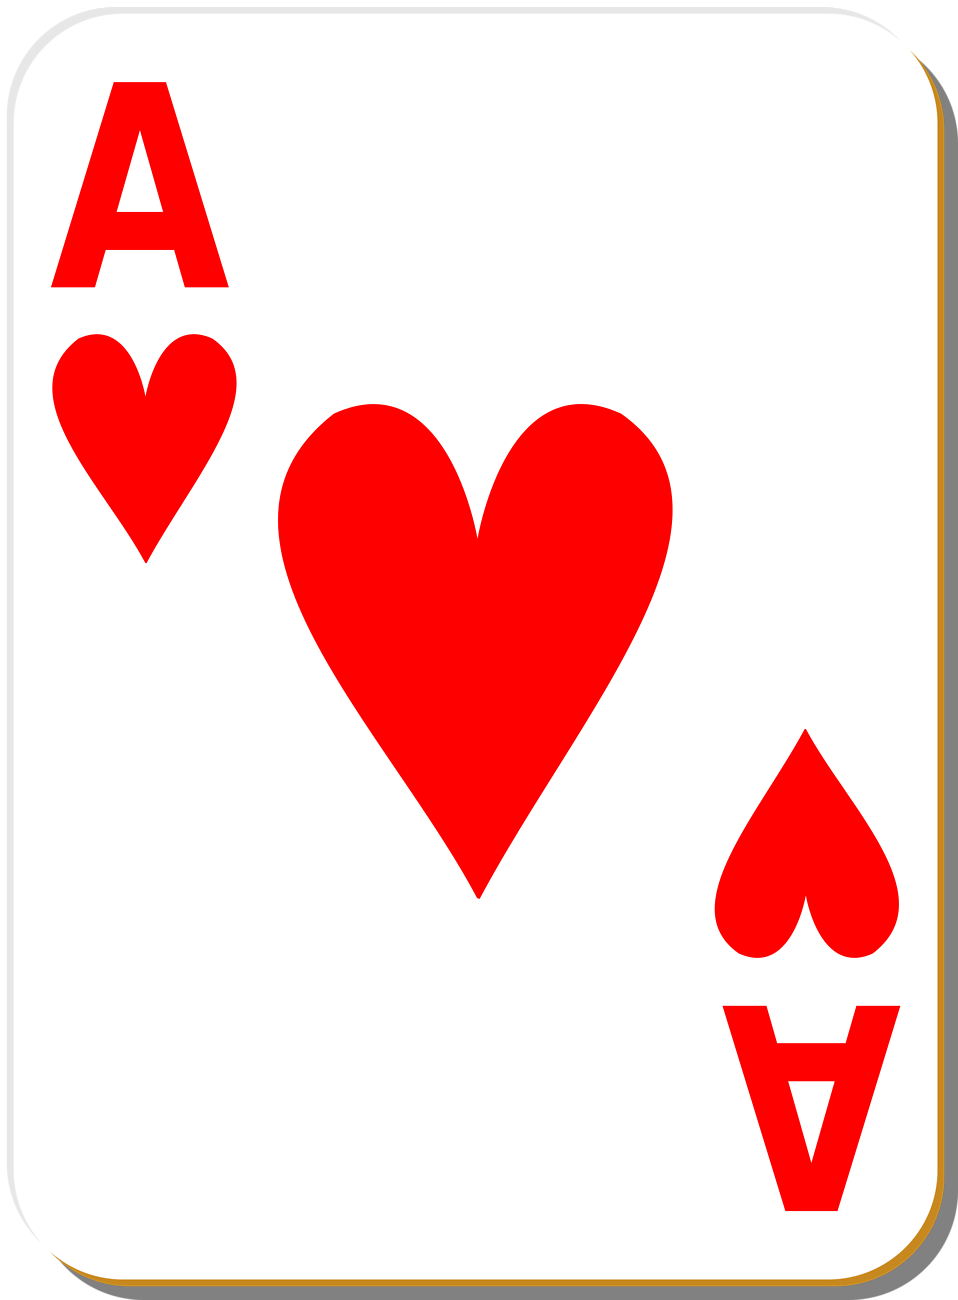 ace heart playing card clip art [ 958 x 1300 Pixel ]